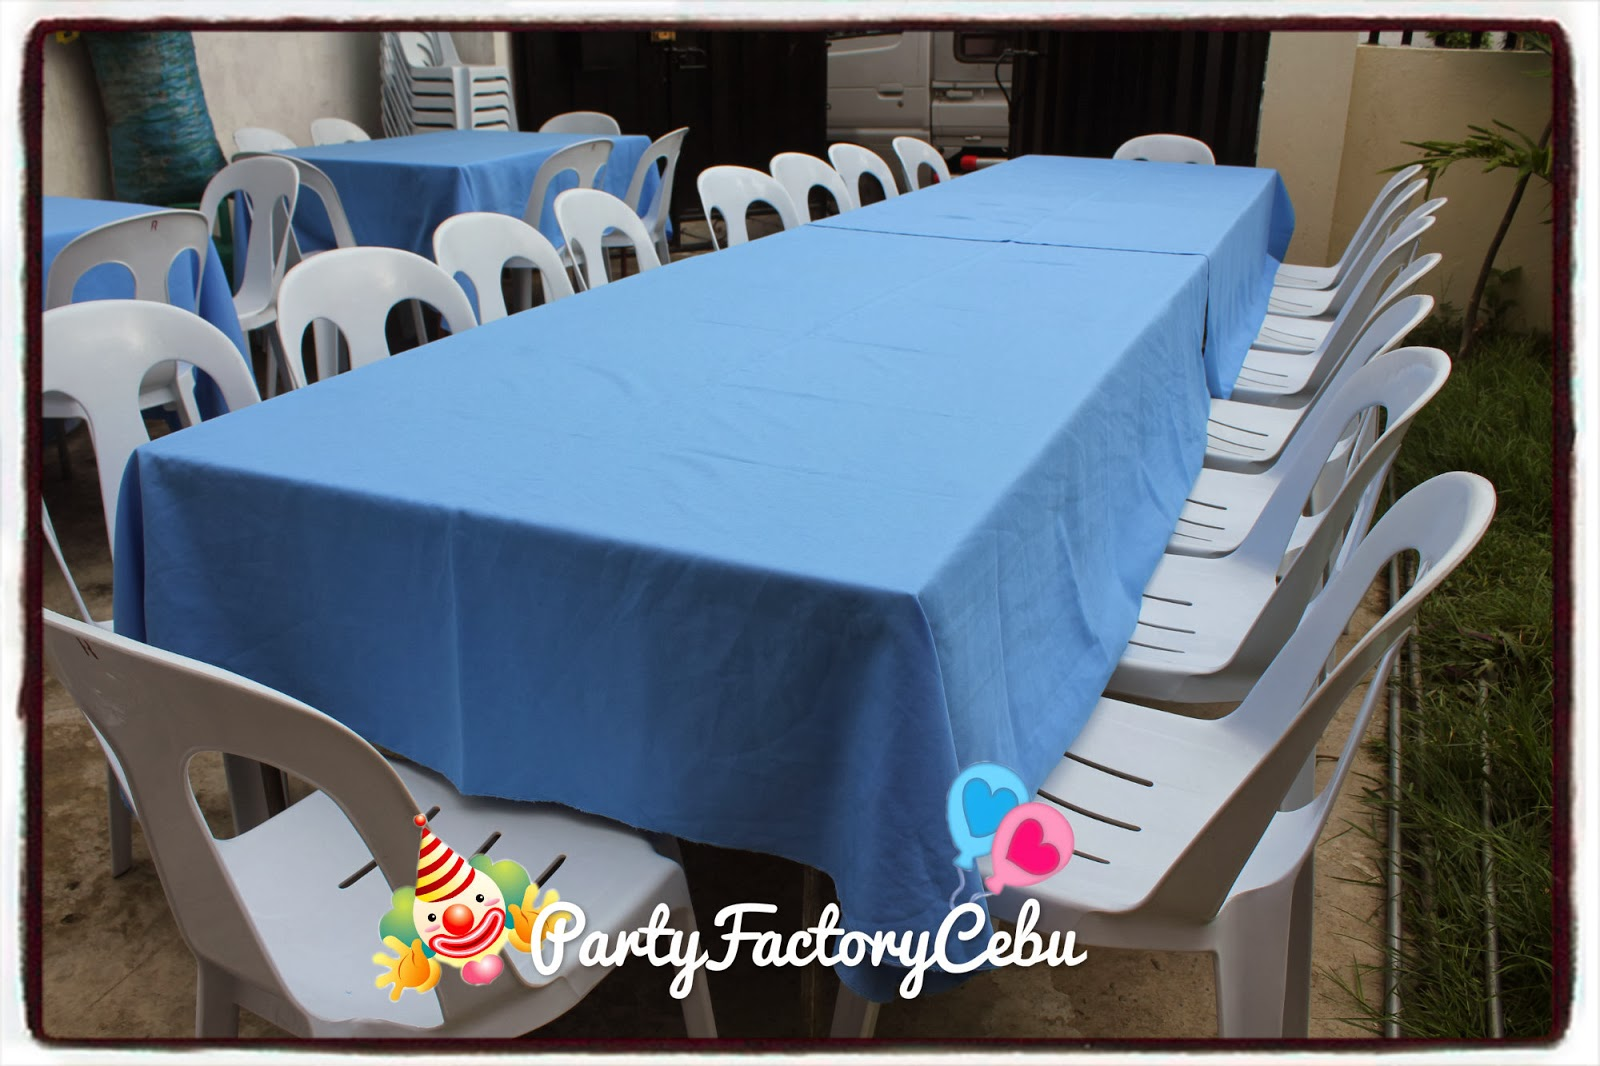 Welcome To Partyfactory Cebu Table Set Up